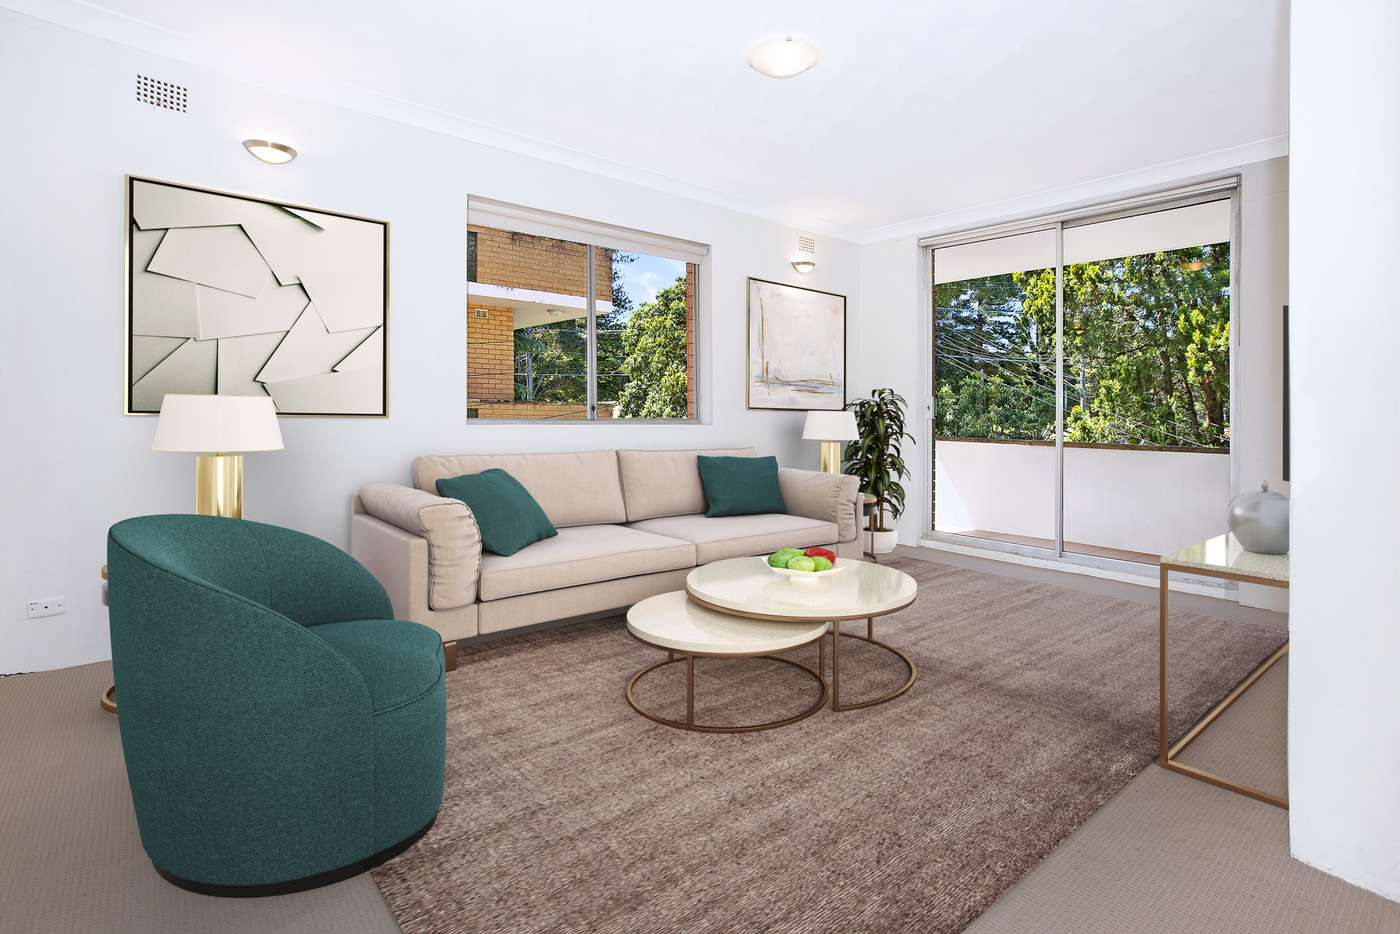 Main view of Homely apartment listing, 4/52 Orpington Street, Ashfield NSW 2131